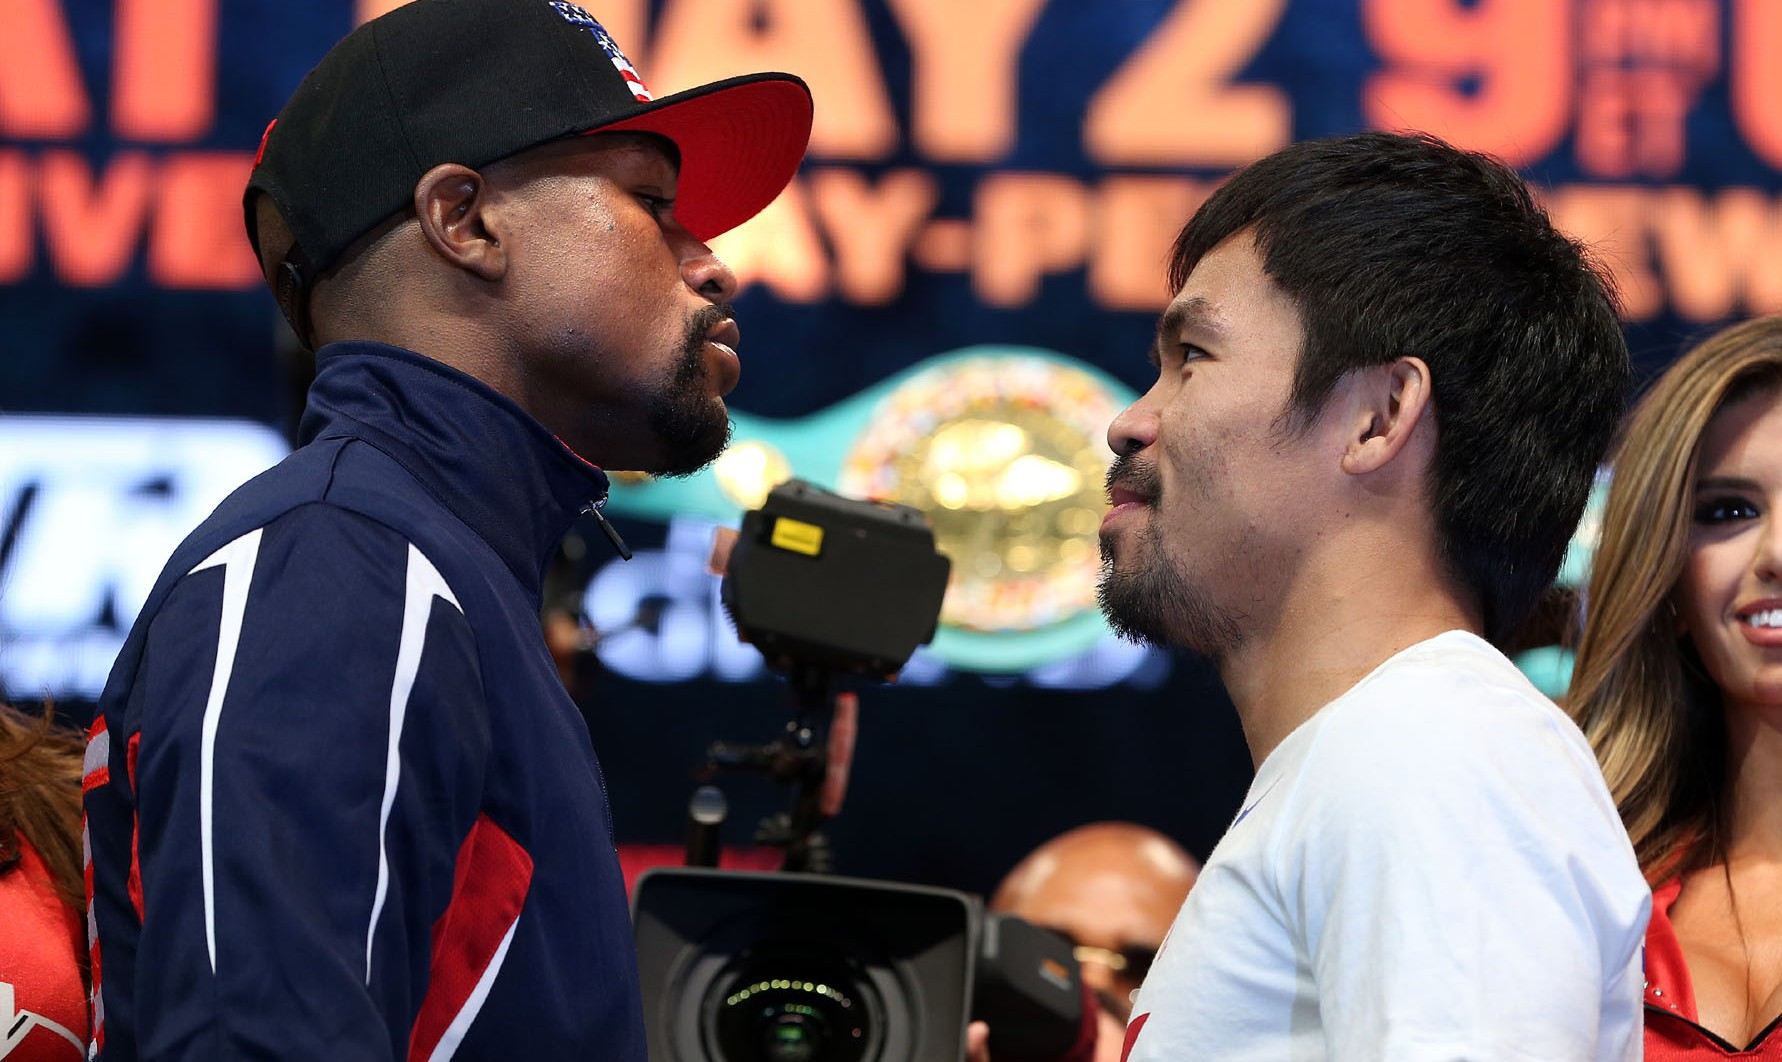 Superstar Manny Pacquiao and  and Floyd Mayweather weigh in (145   146)  for their upcoming historic 12-round welterweight world championship unification mega-fight.   Photo Credit : Chris Farina - Top Rank